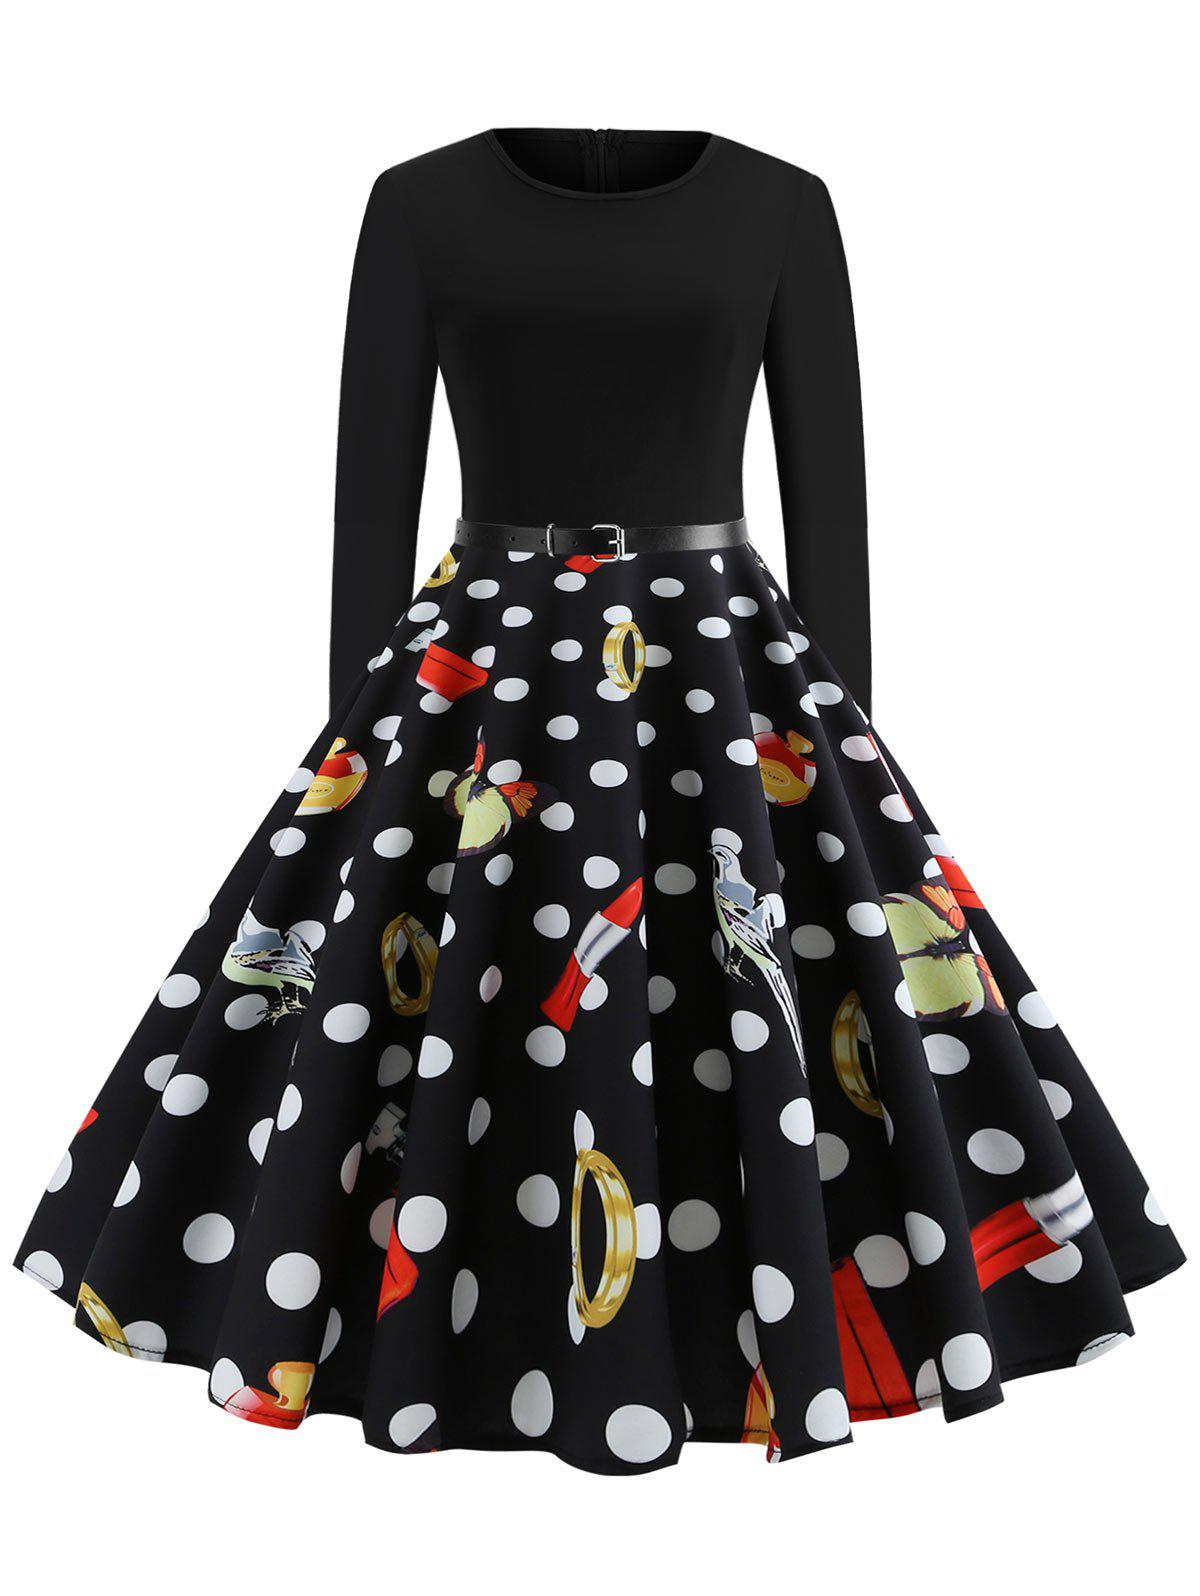 Polka Dot Print Long Sleeve Rockabilly Style High Waist Dress - BLACK M